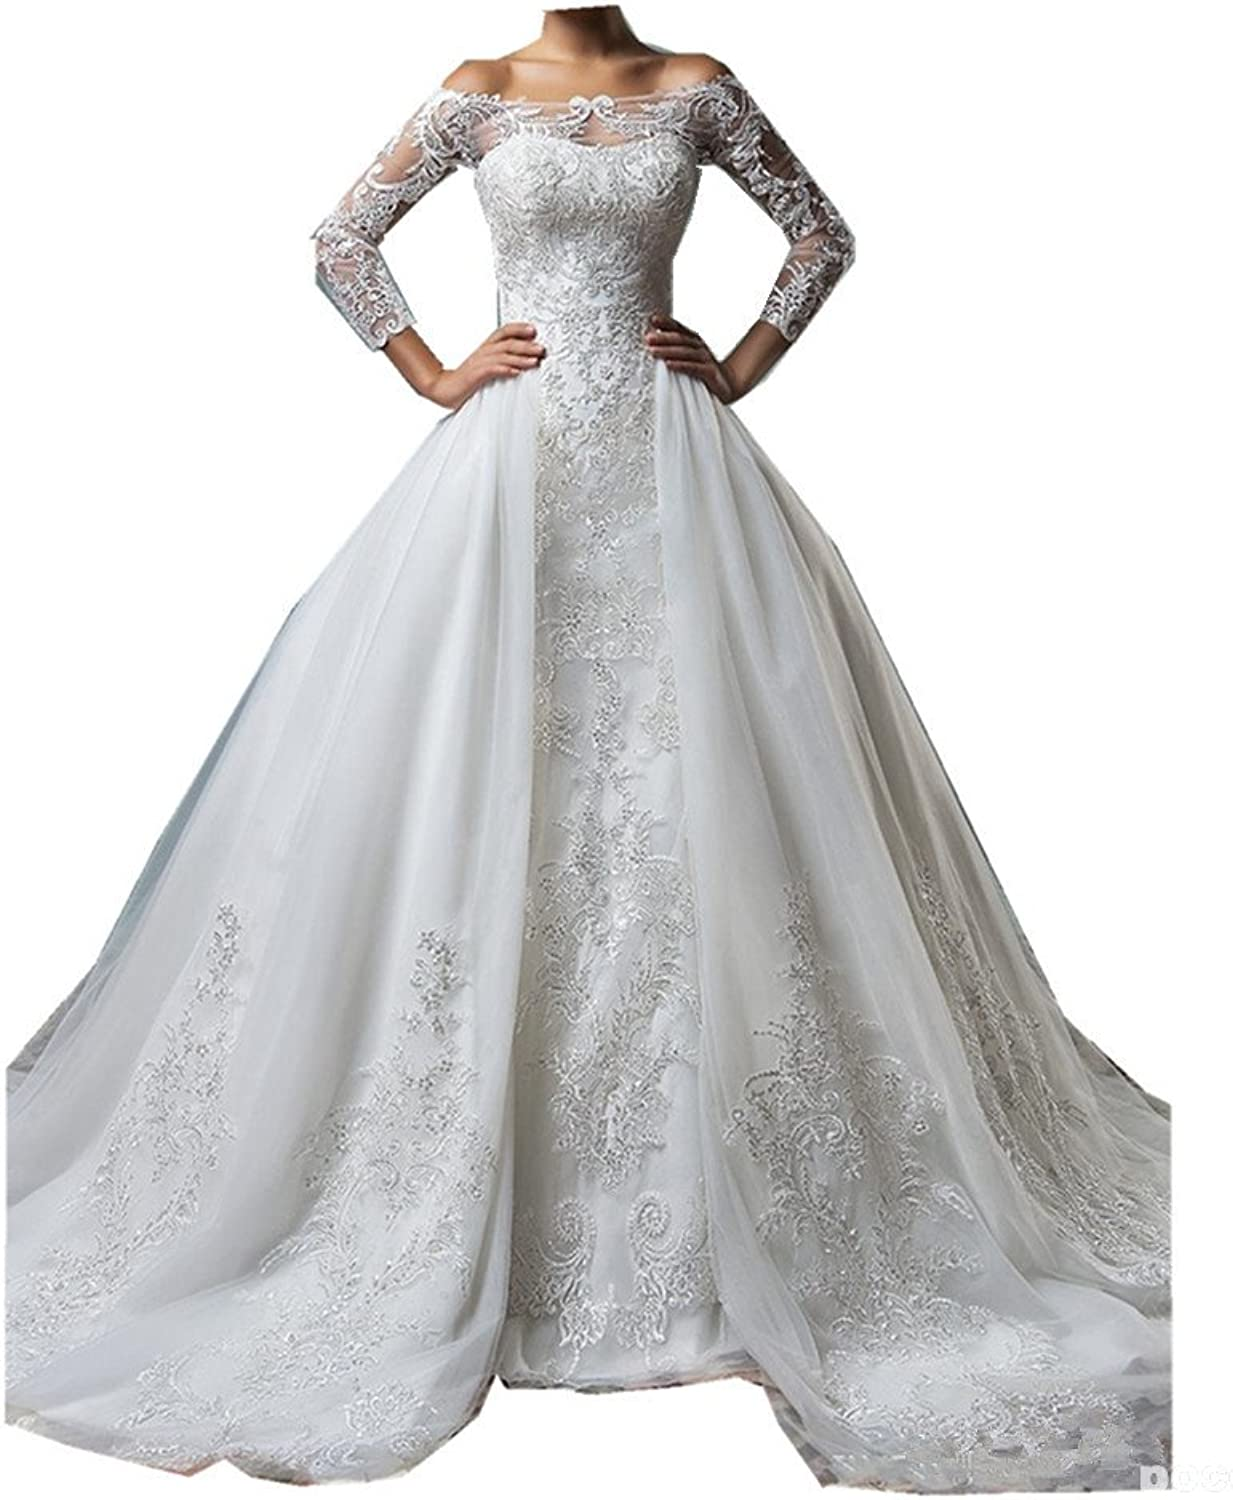 Uryouthstyle Aline Wedding Dresses Lace Court Train Bridal Gowns